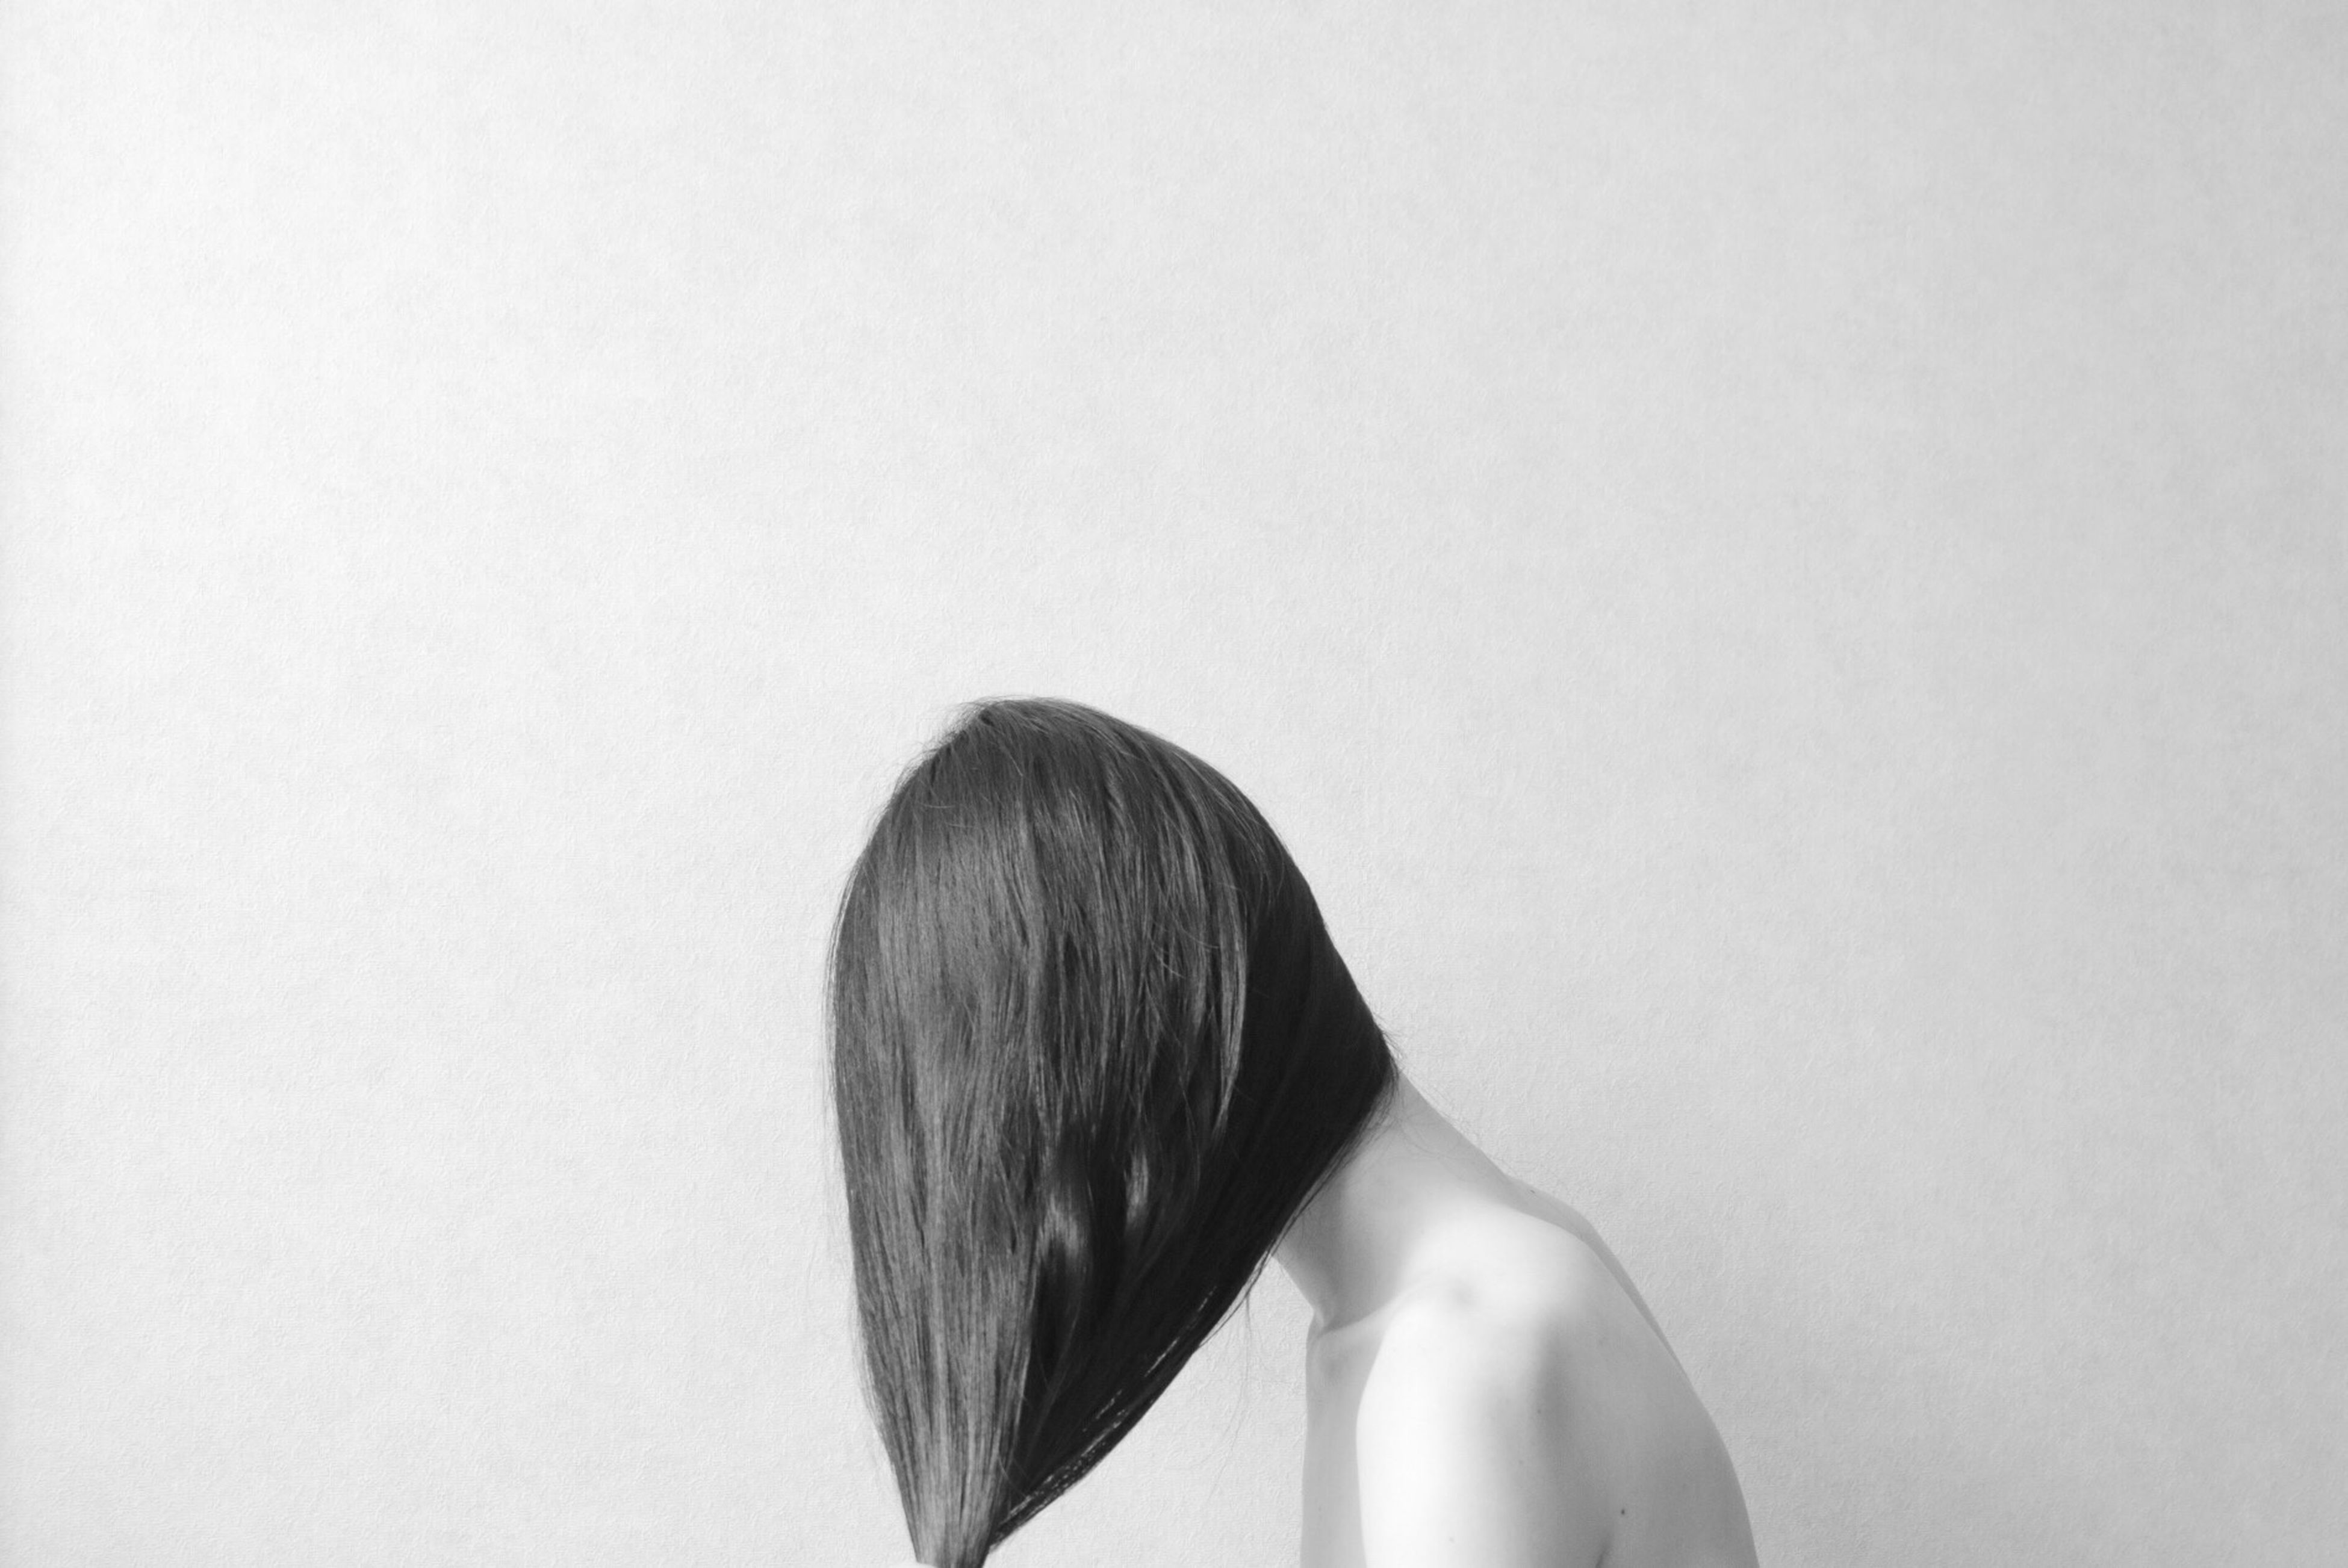 long hair, human hair, rear view, white background, studio shot, in front of, straight hair